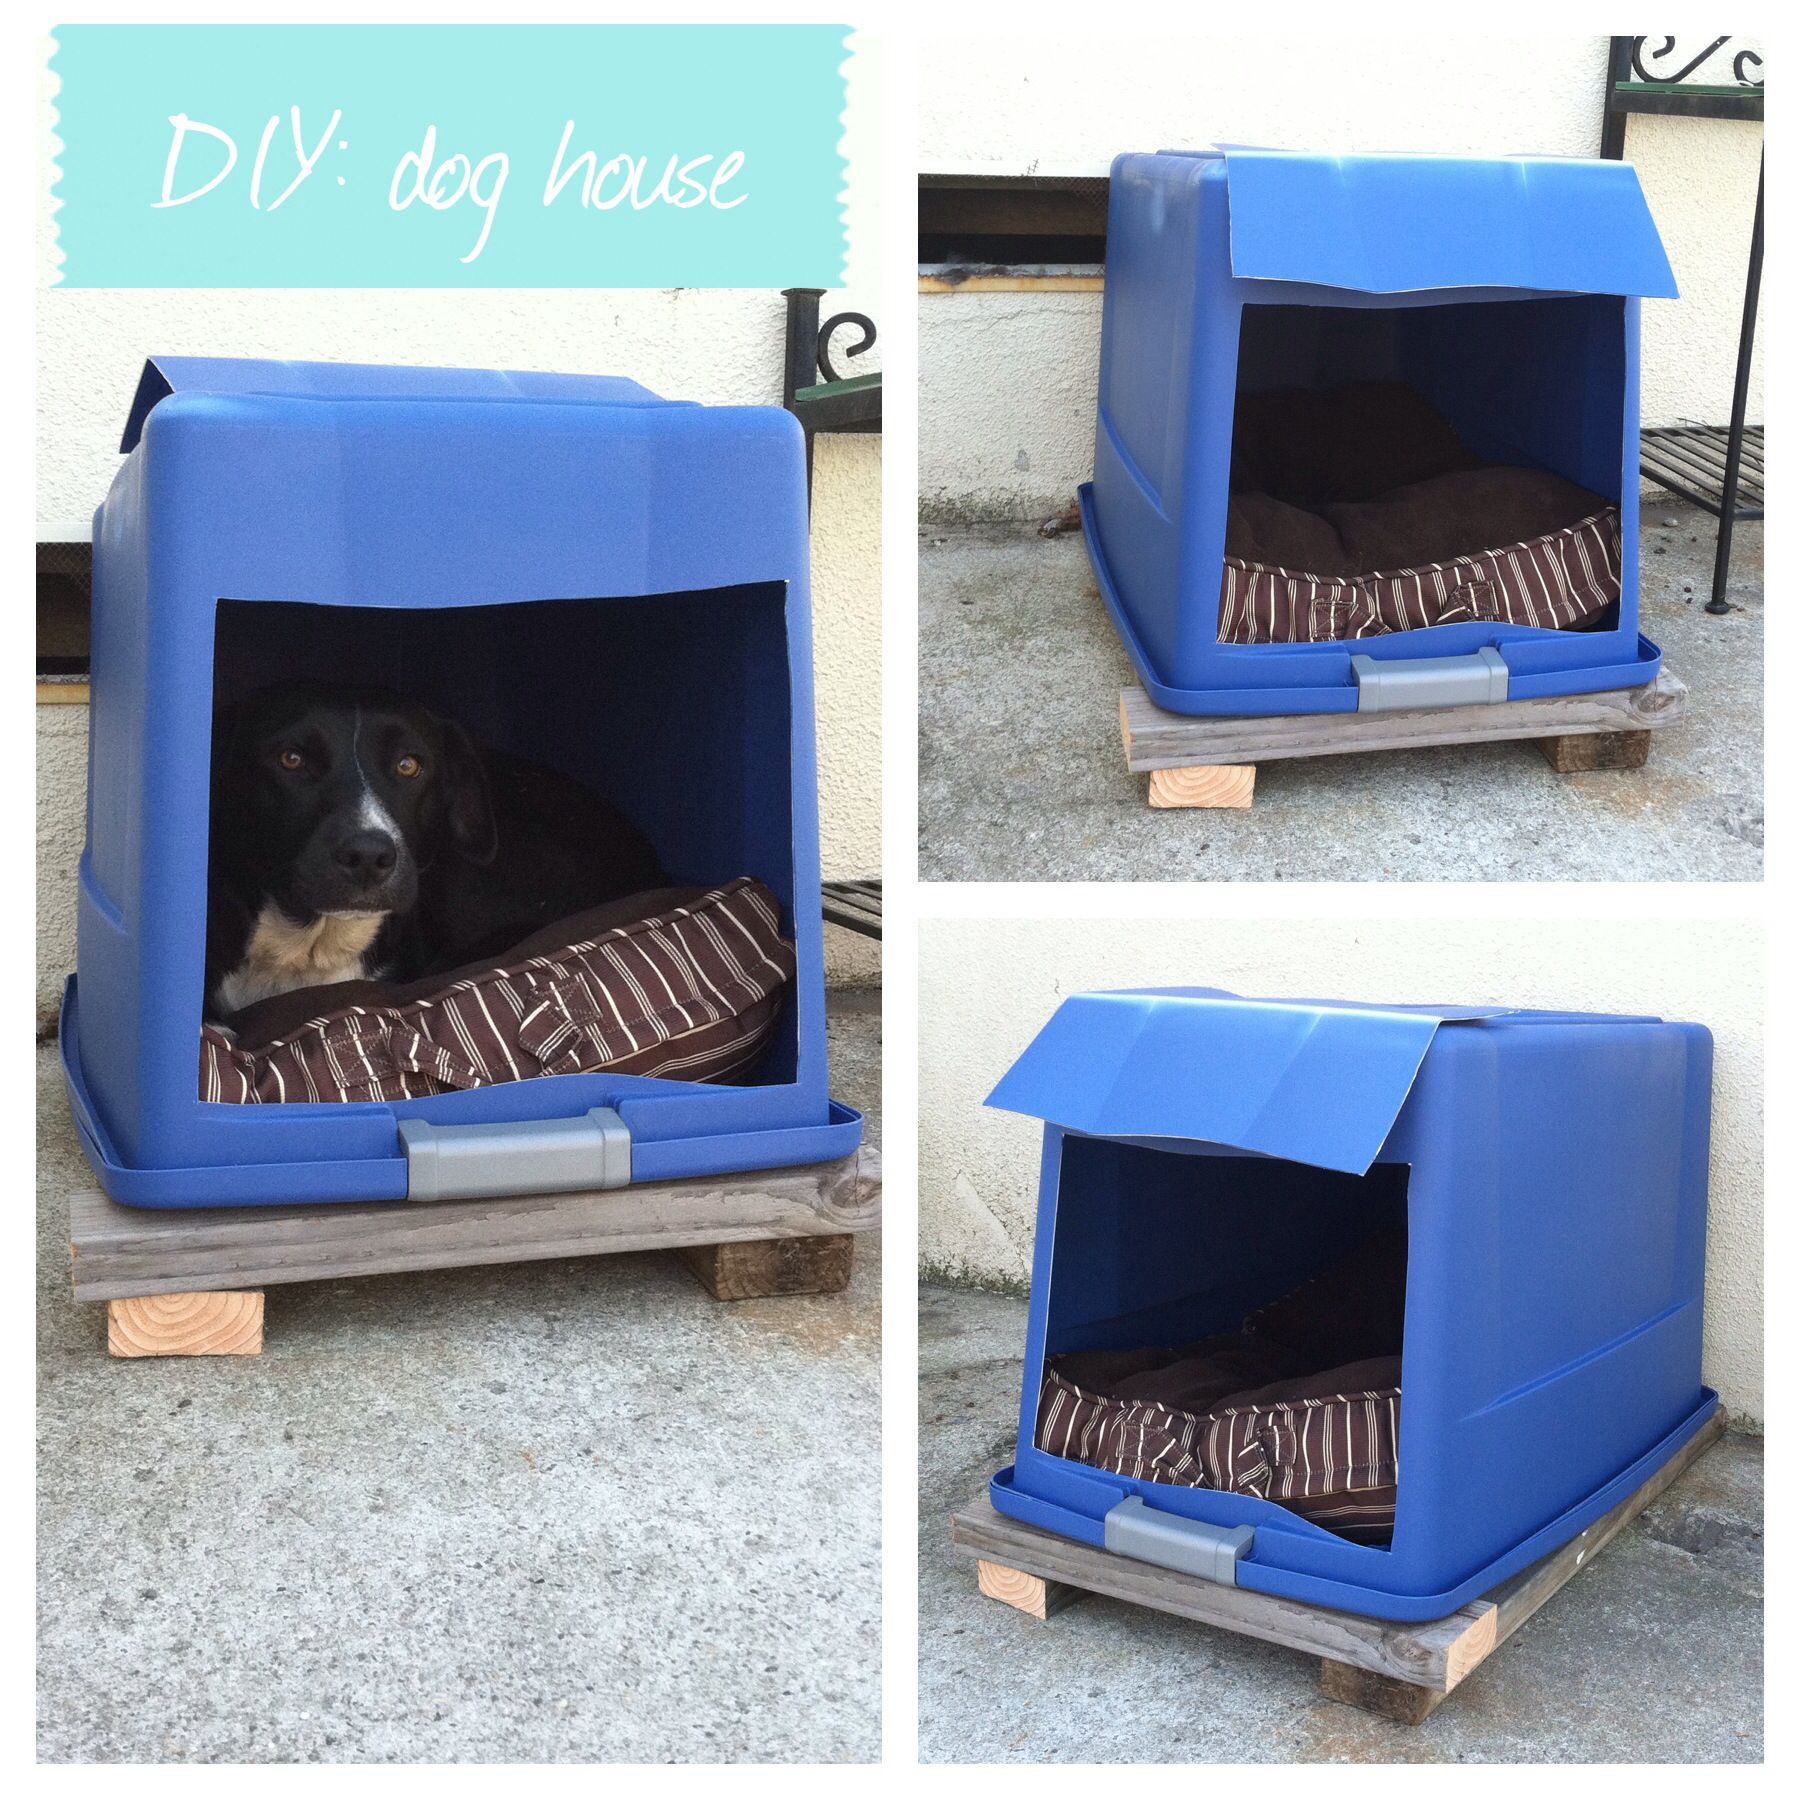 Best ideas about DIY Dog Shelter . Save or Pin DIY dog house plastic bin with lid attached cut a hole Now.